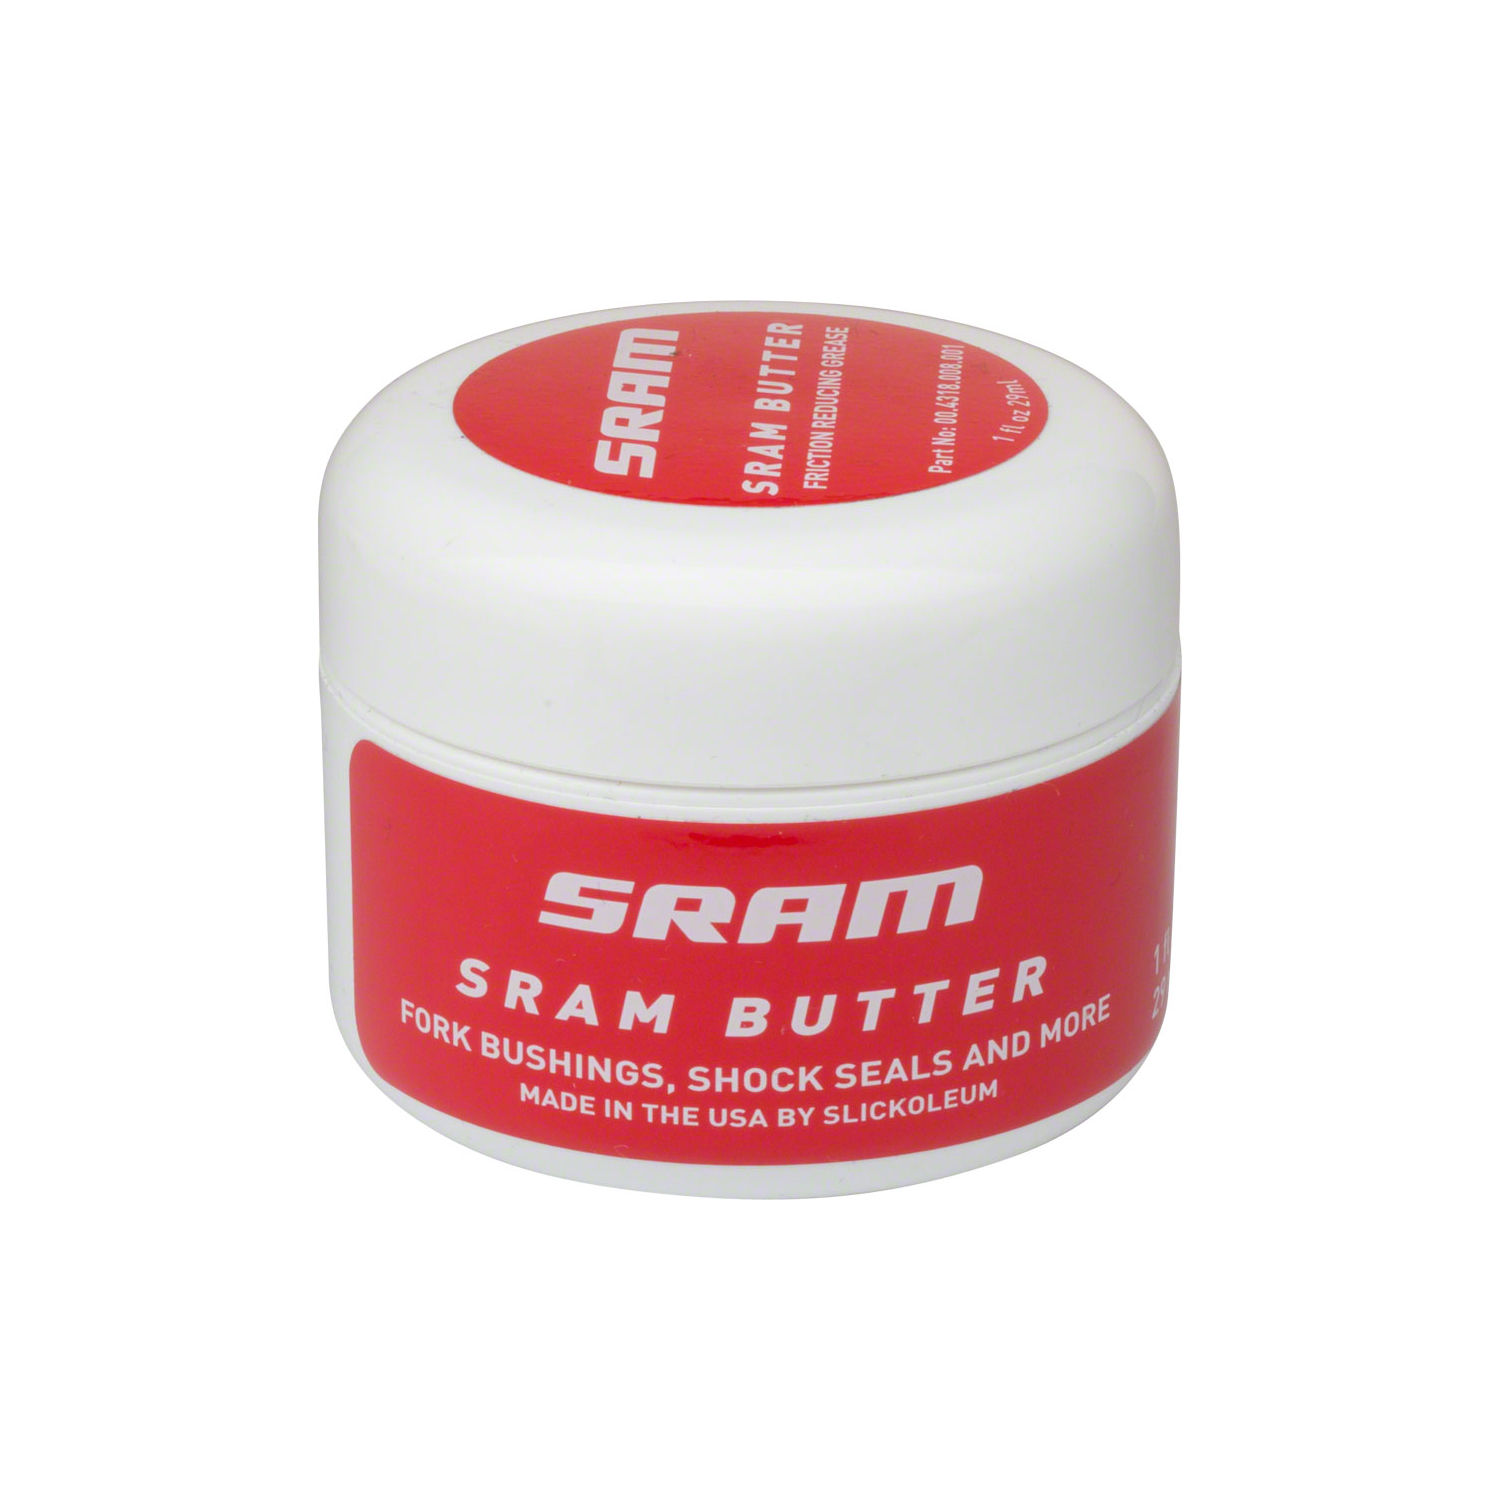 SRAM Butter Grease - 1oz